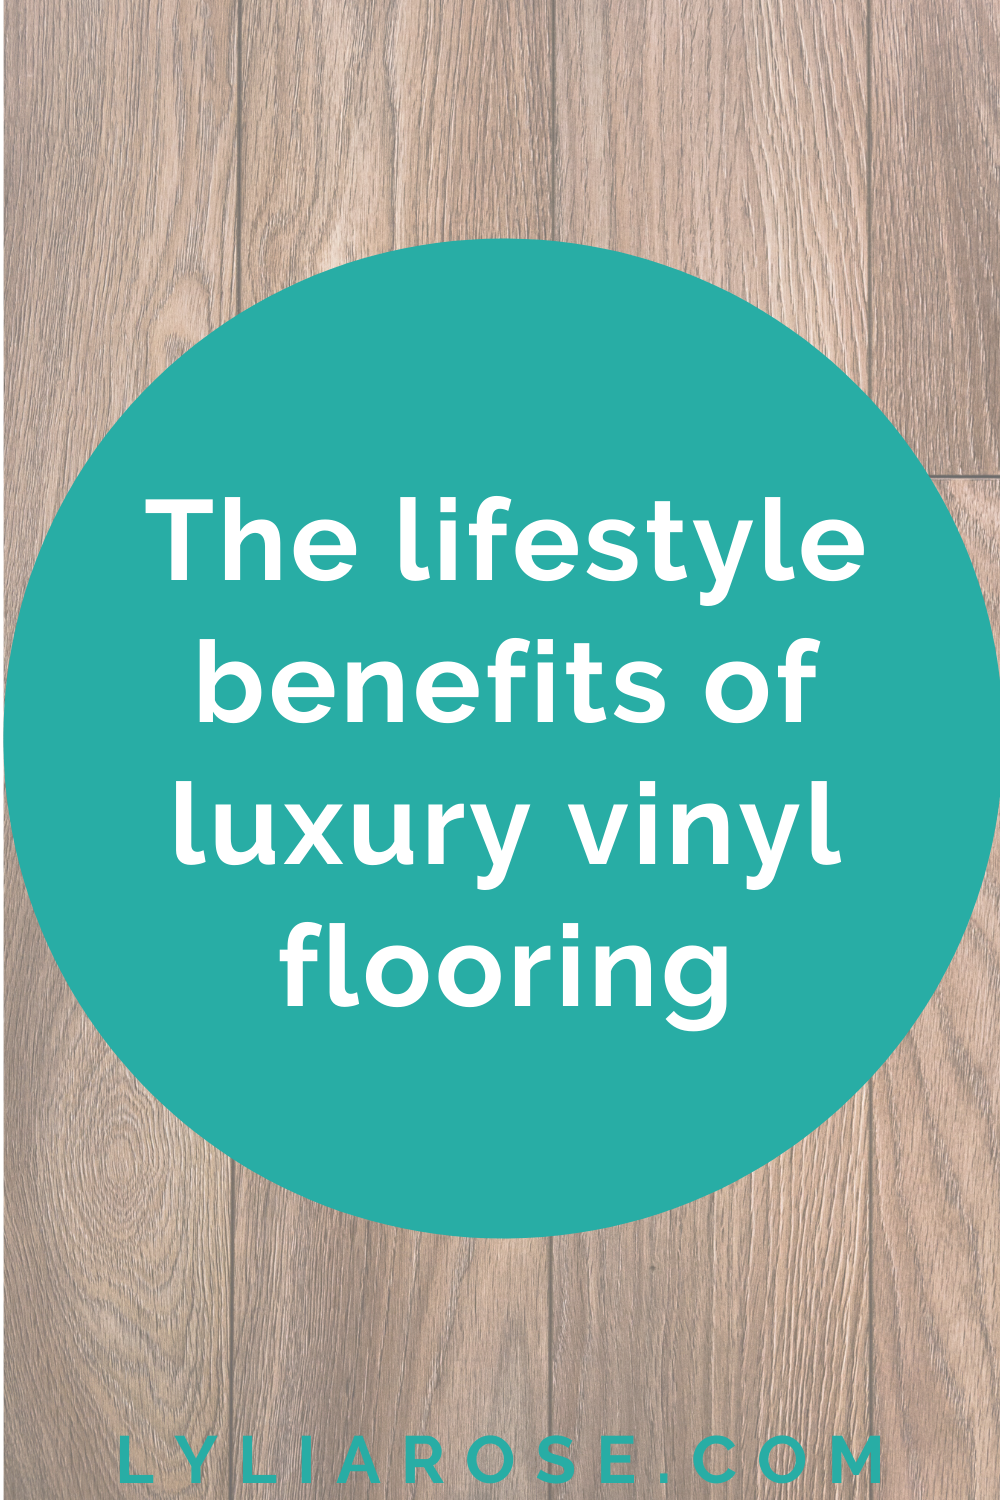 The lifestyle benefits of luxury vinyl flooring